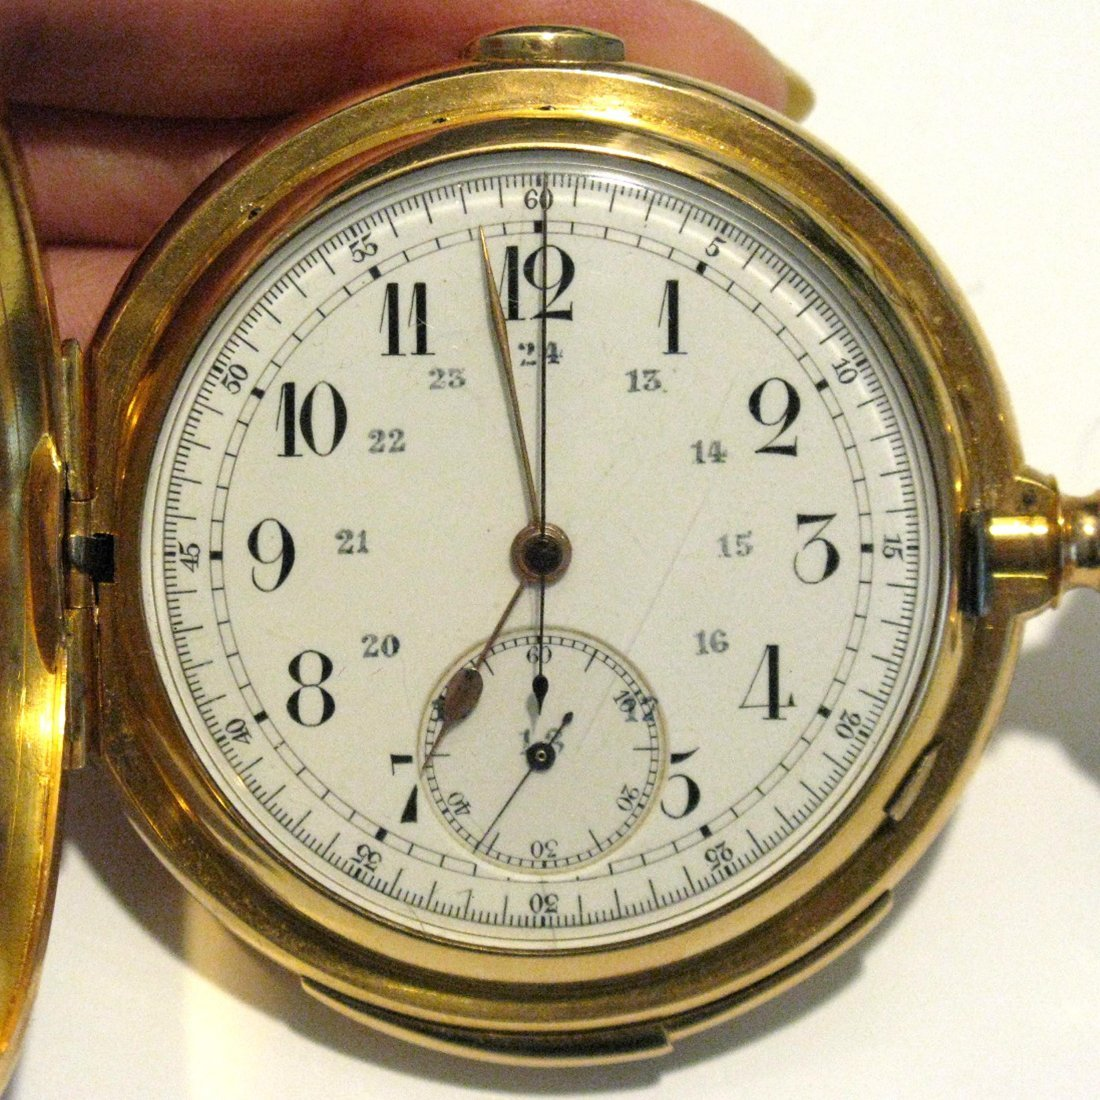 LECOULTRE REPEATER POCKET WATCH 18K GOLD CASE - 8